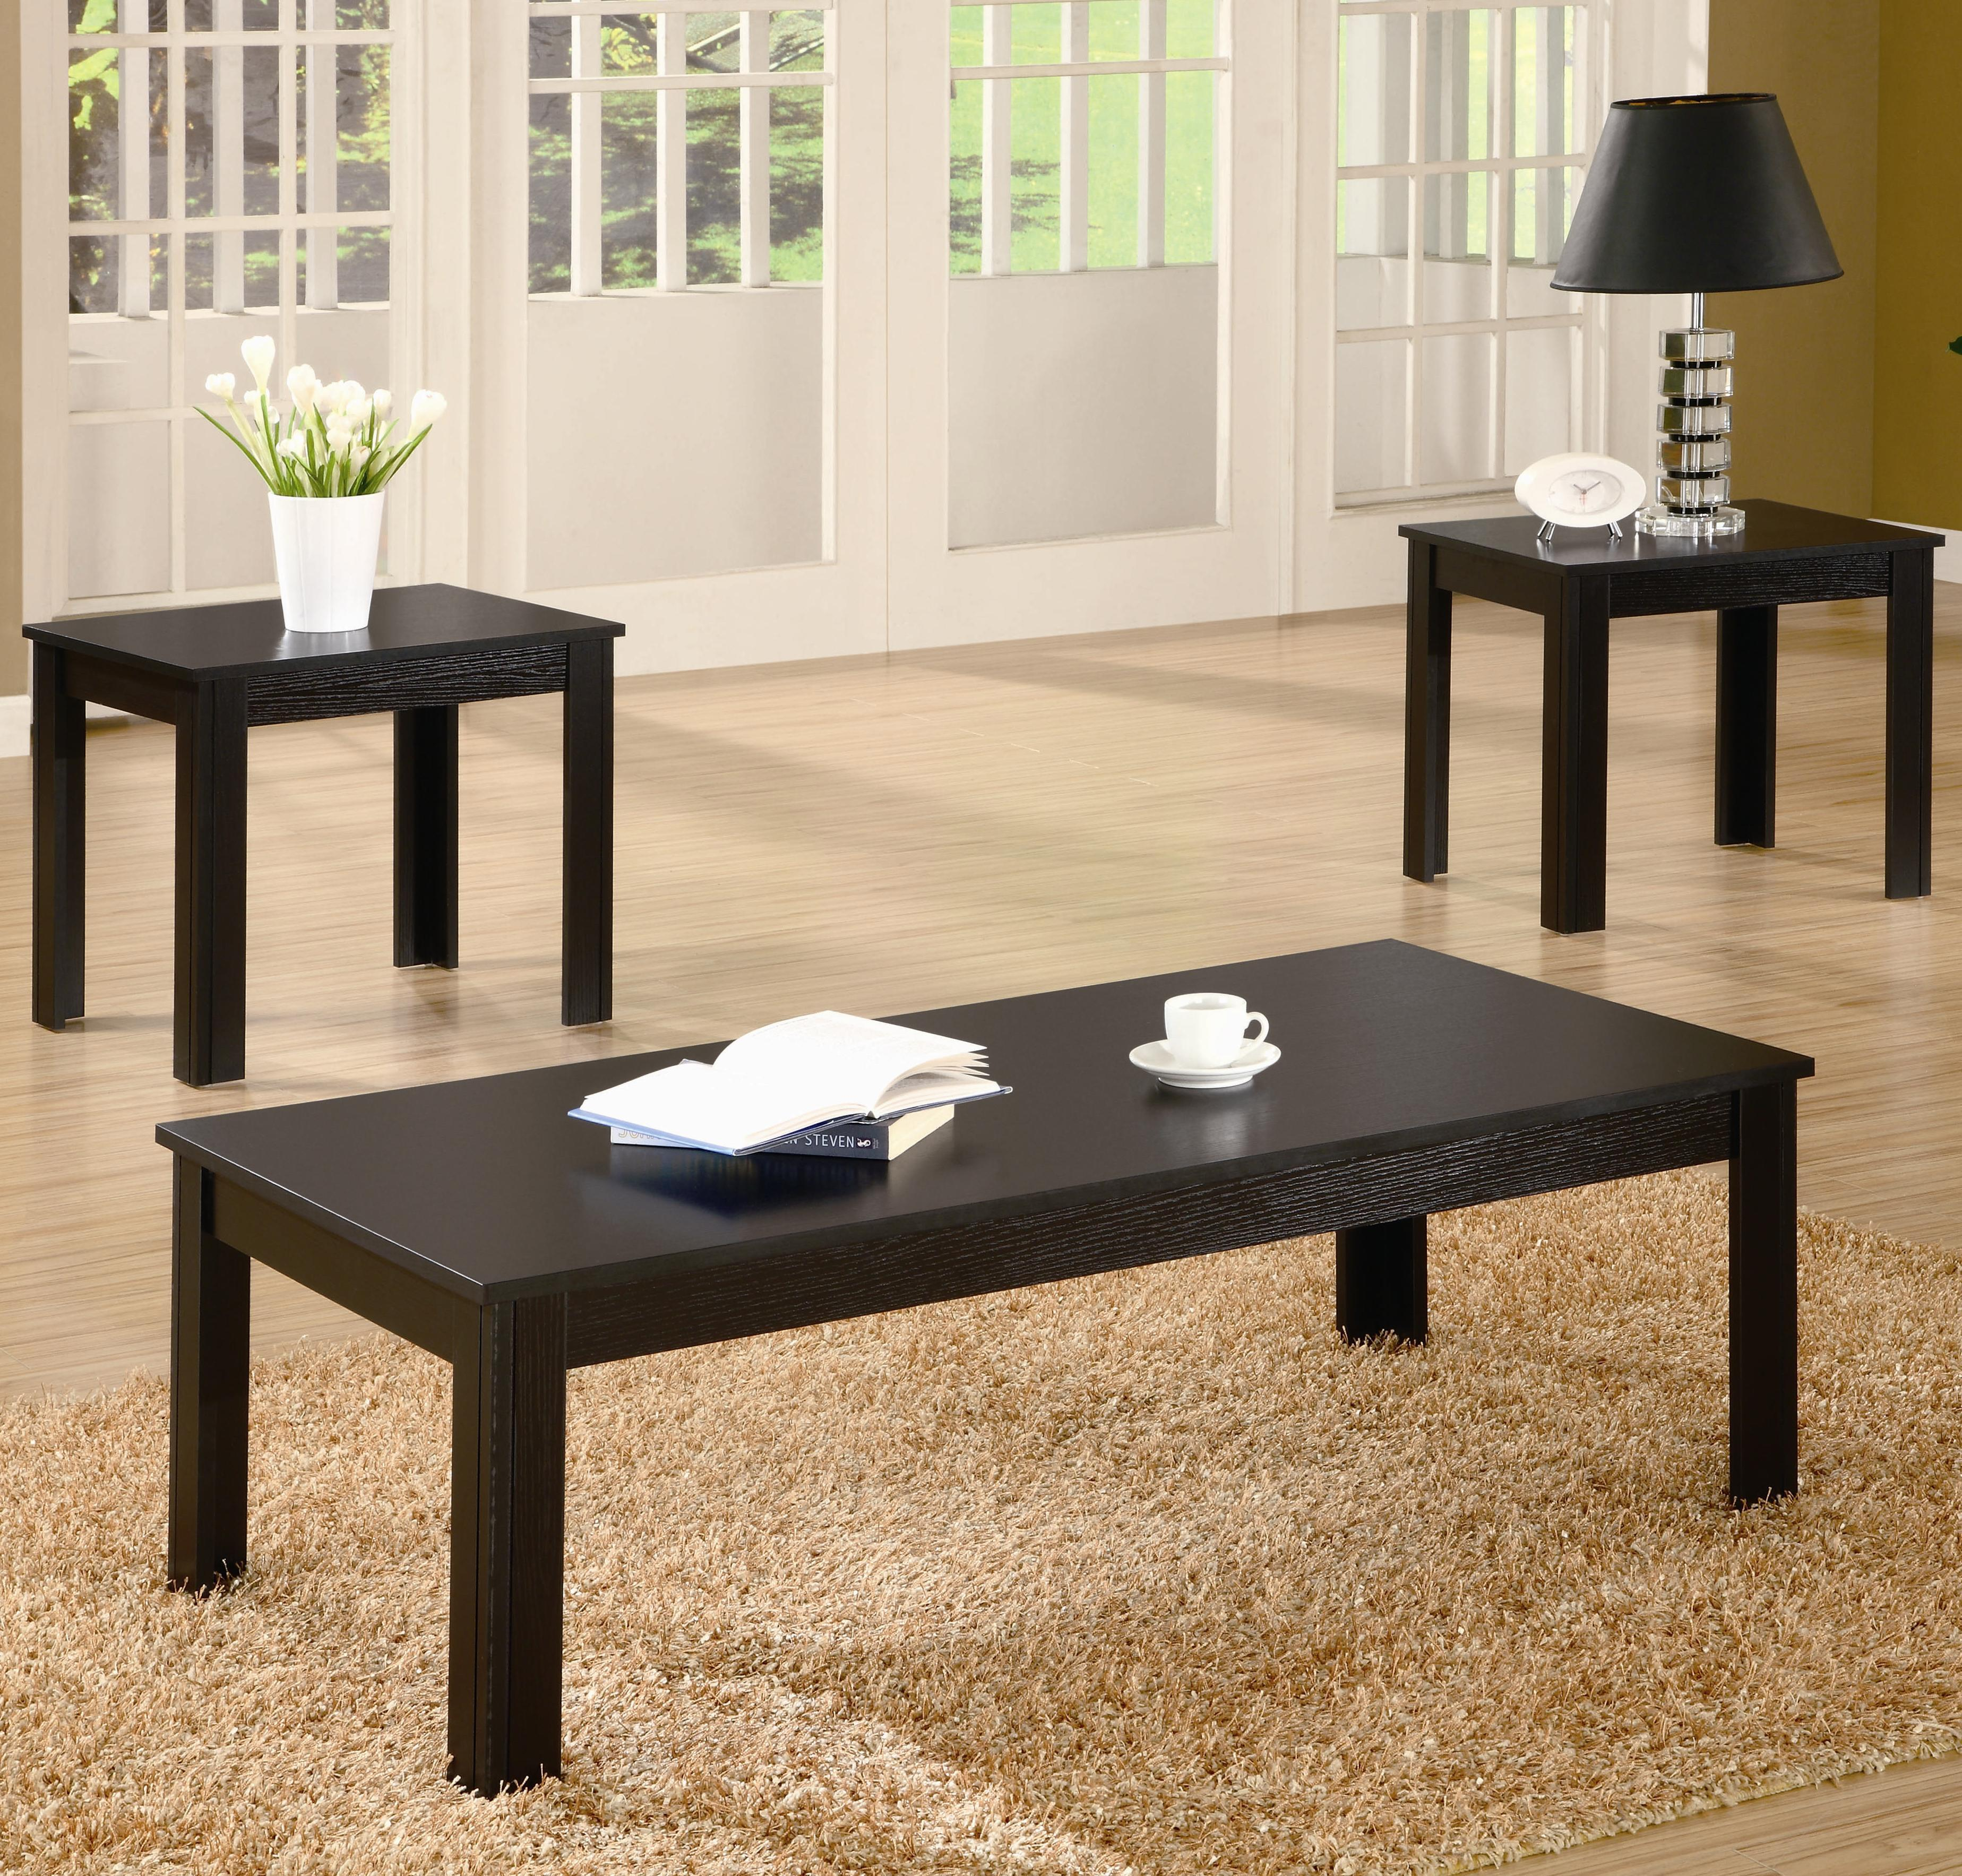 Coaster Occasional Table Sets 3-Piece Contemporary Round Coffee u0026 End Table Set - Coaster Fine Furniture : 3 piece black coffee table sets - Pezcame.Com